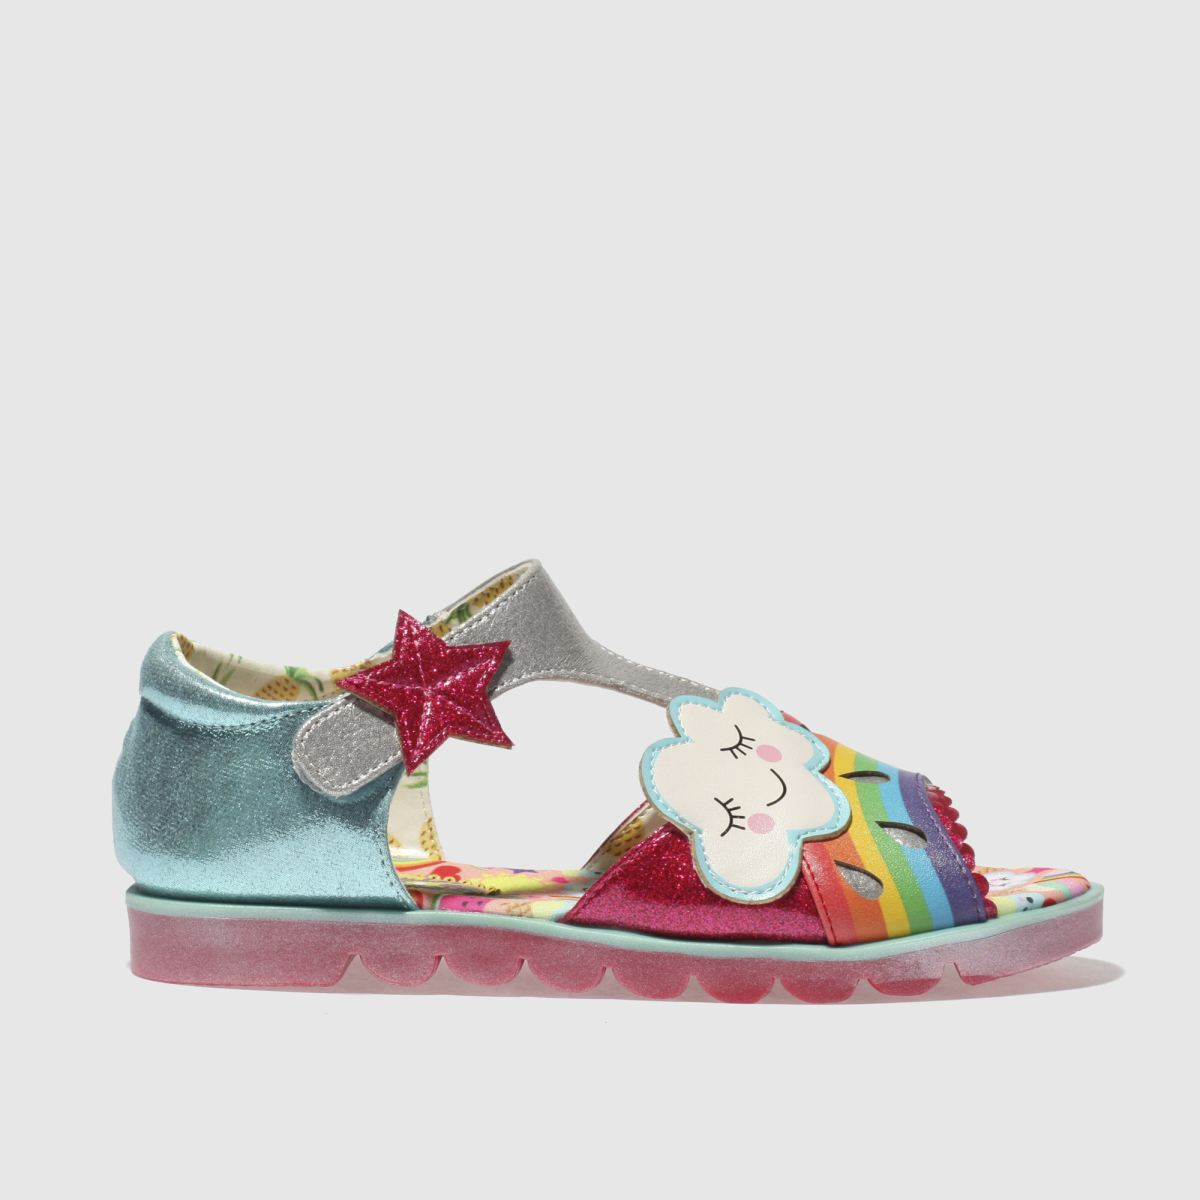 Irregular Choice Irregular Choice Blue & Pink Diamond Rain Girls Junior Sandals